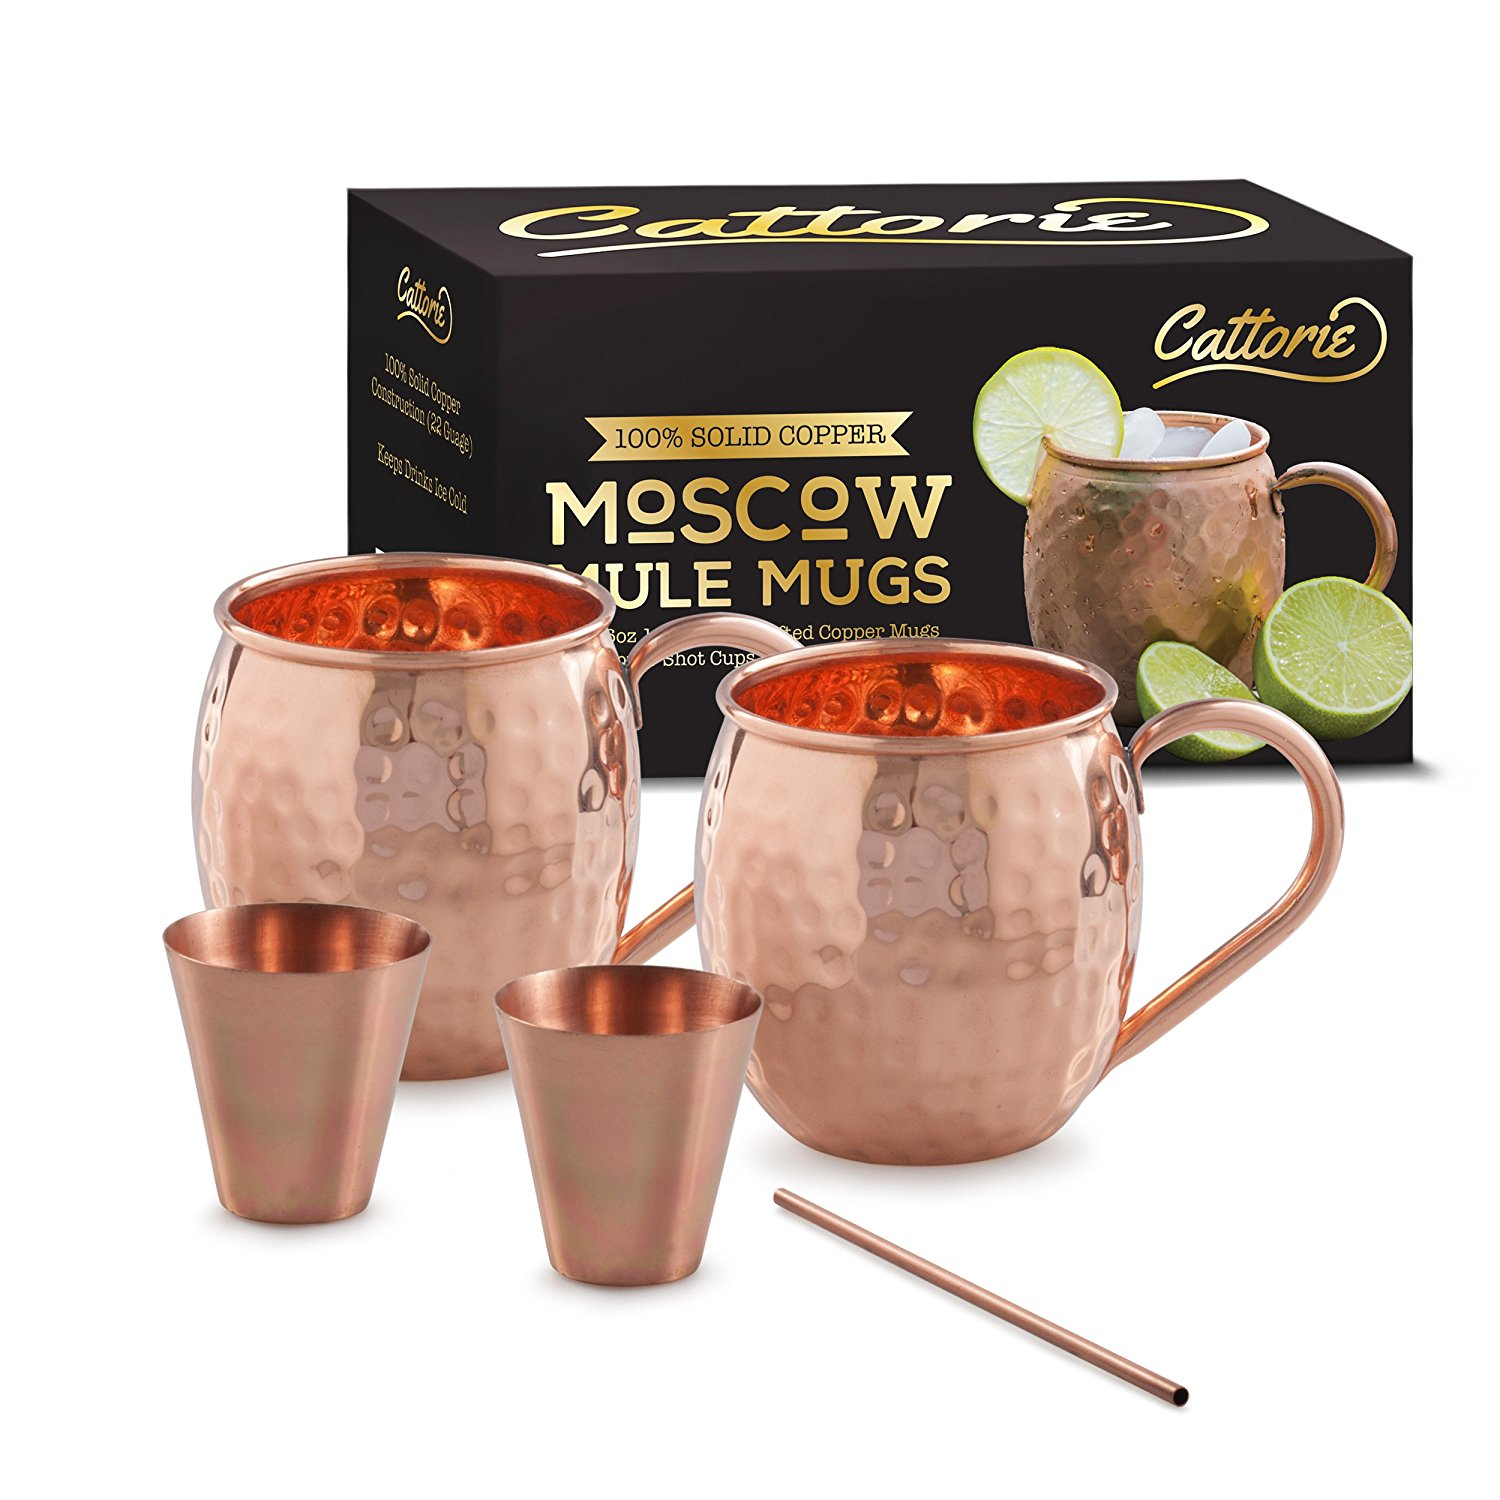 Best Copper Mule Mugs-Cattorie Solid Moscow Mule Copper Mugs Kit